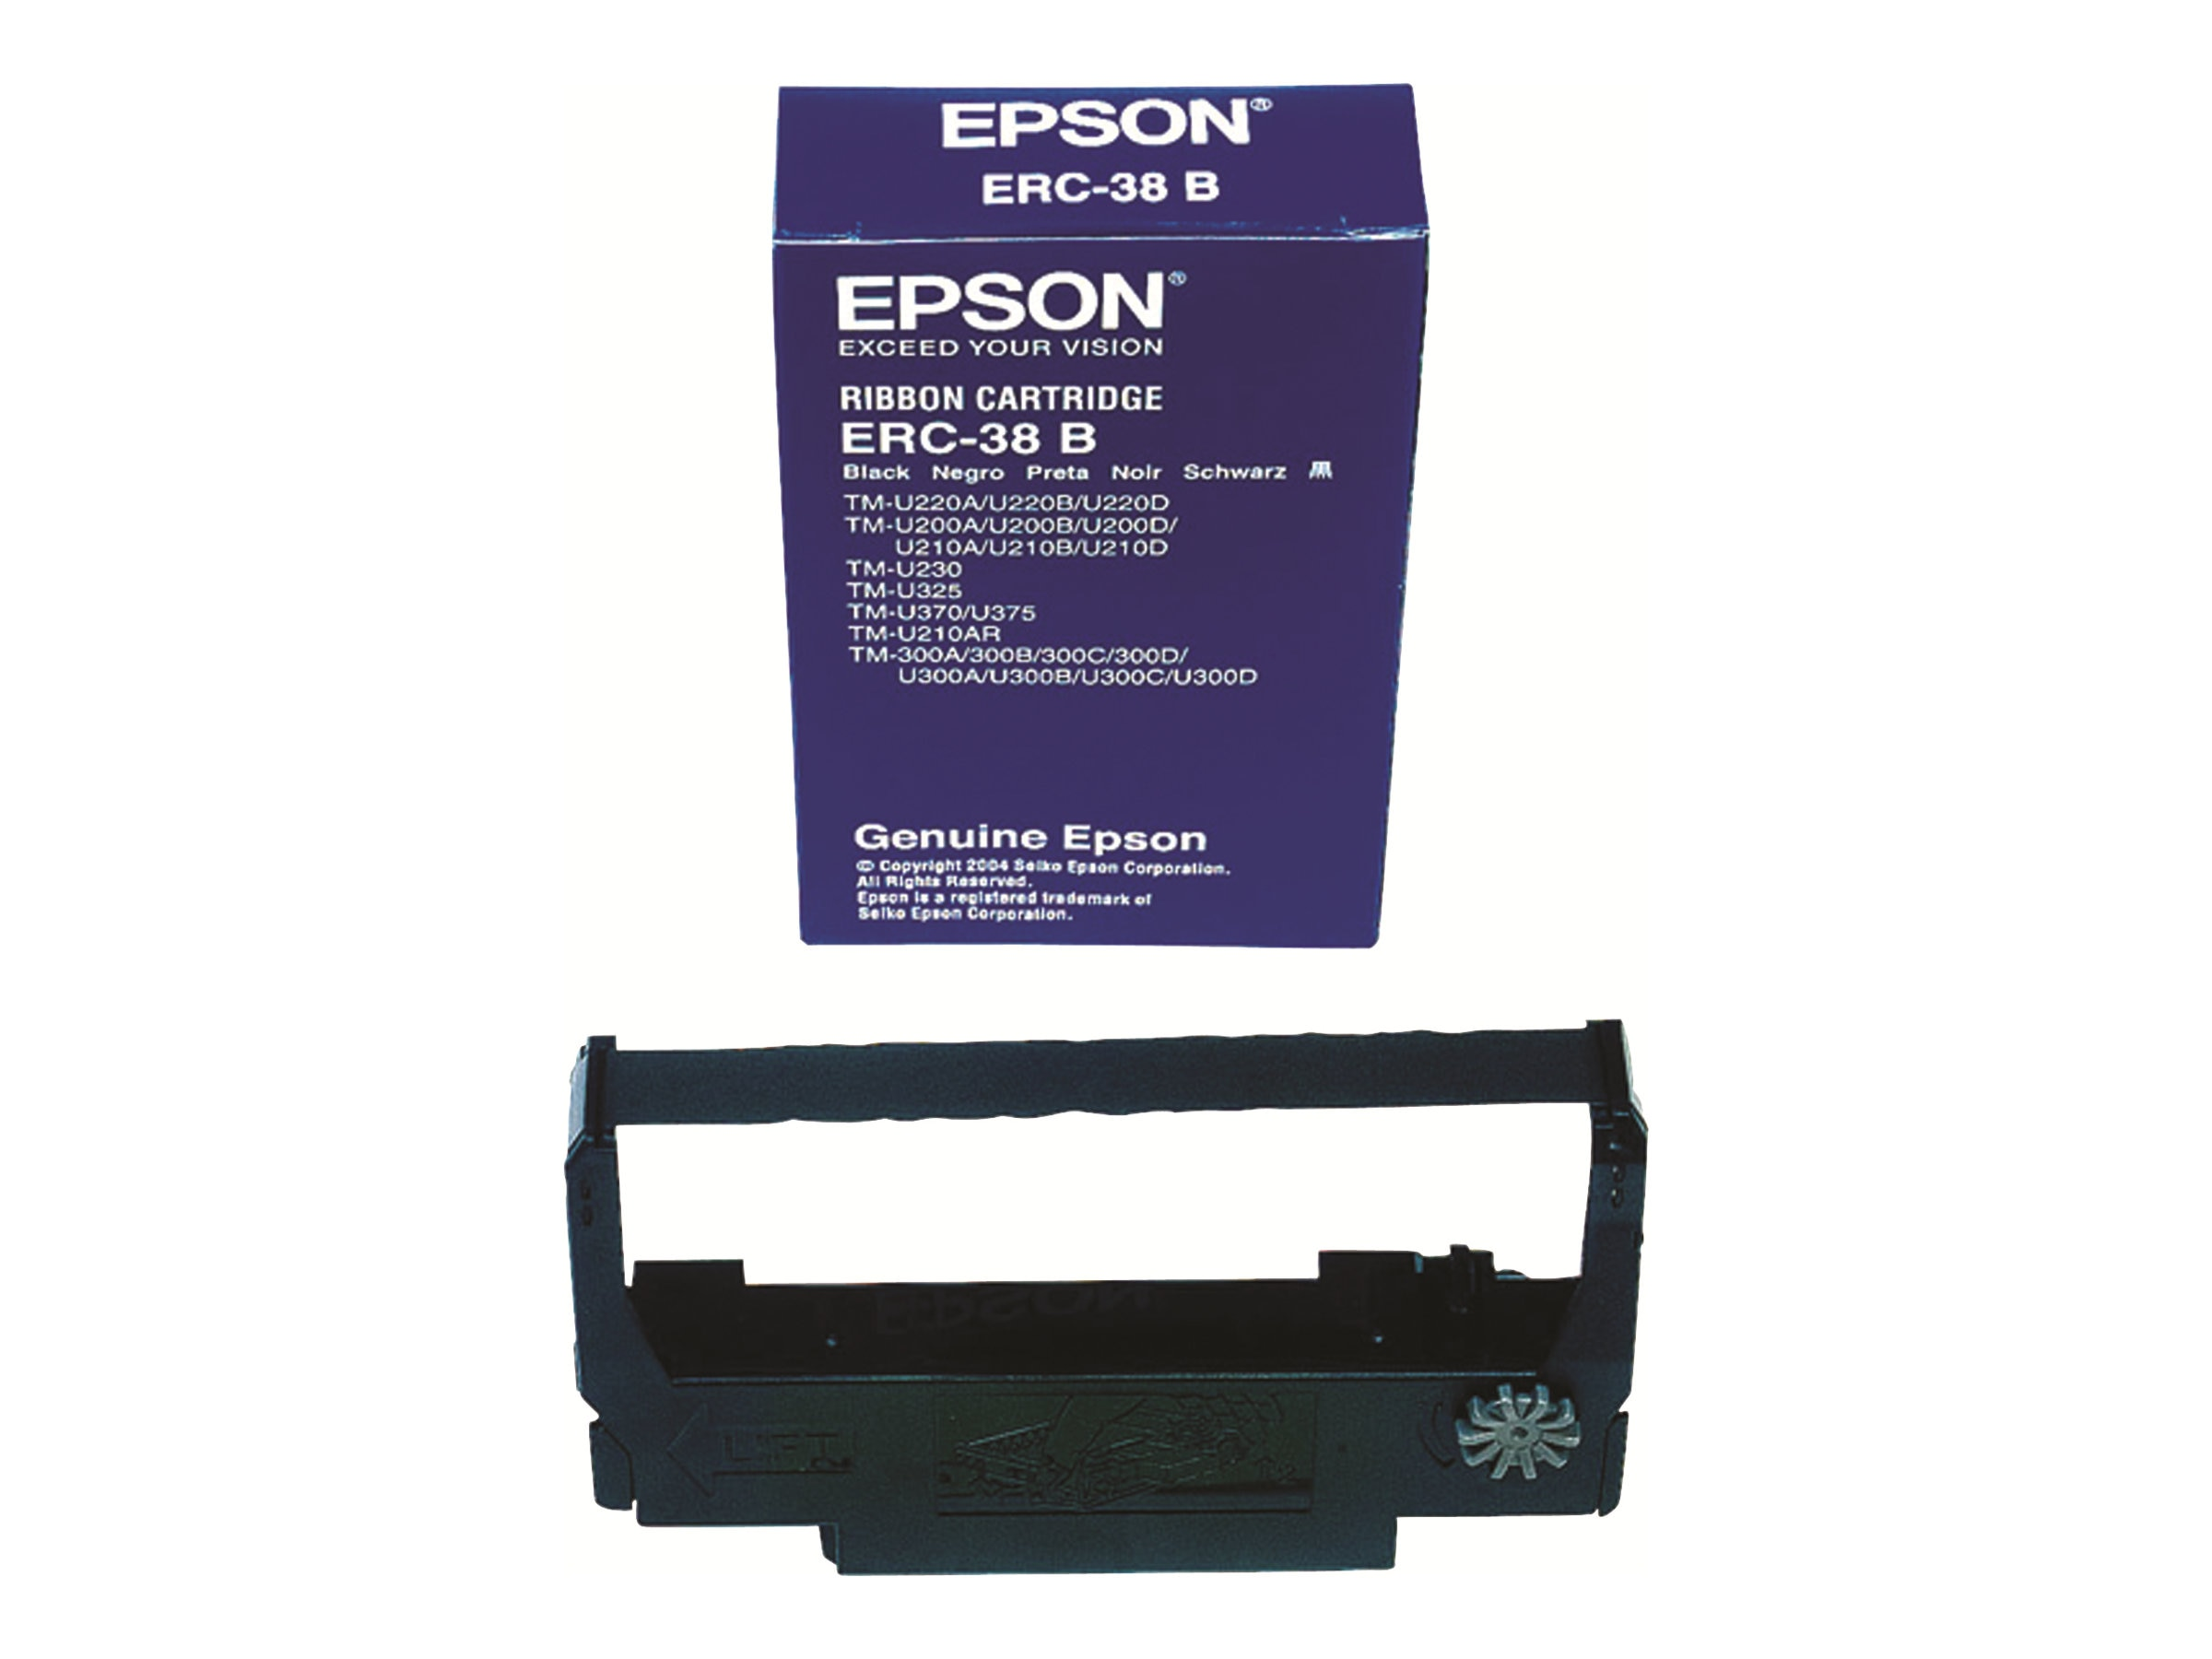 Epson Black Epson ERC-38B Nylon Printer Ribbon for POS Printers (10-pack Case), ERC-38B-CASE